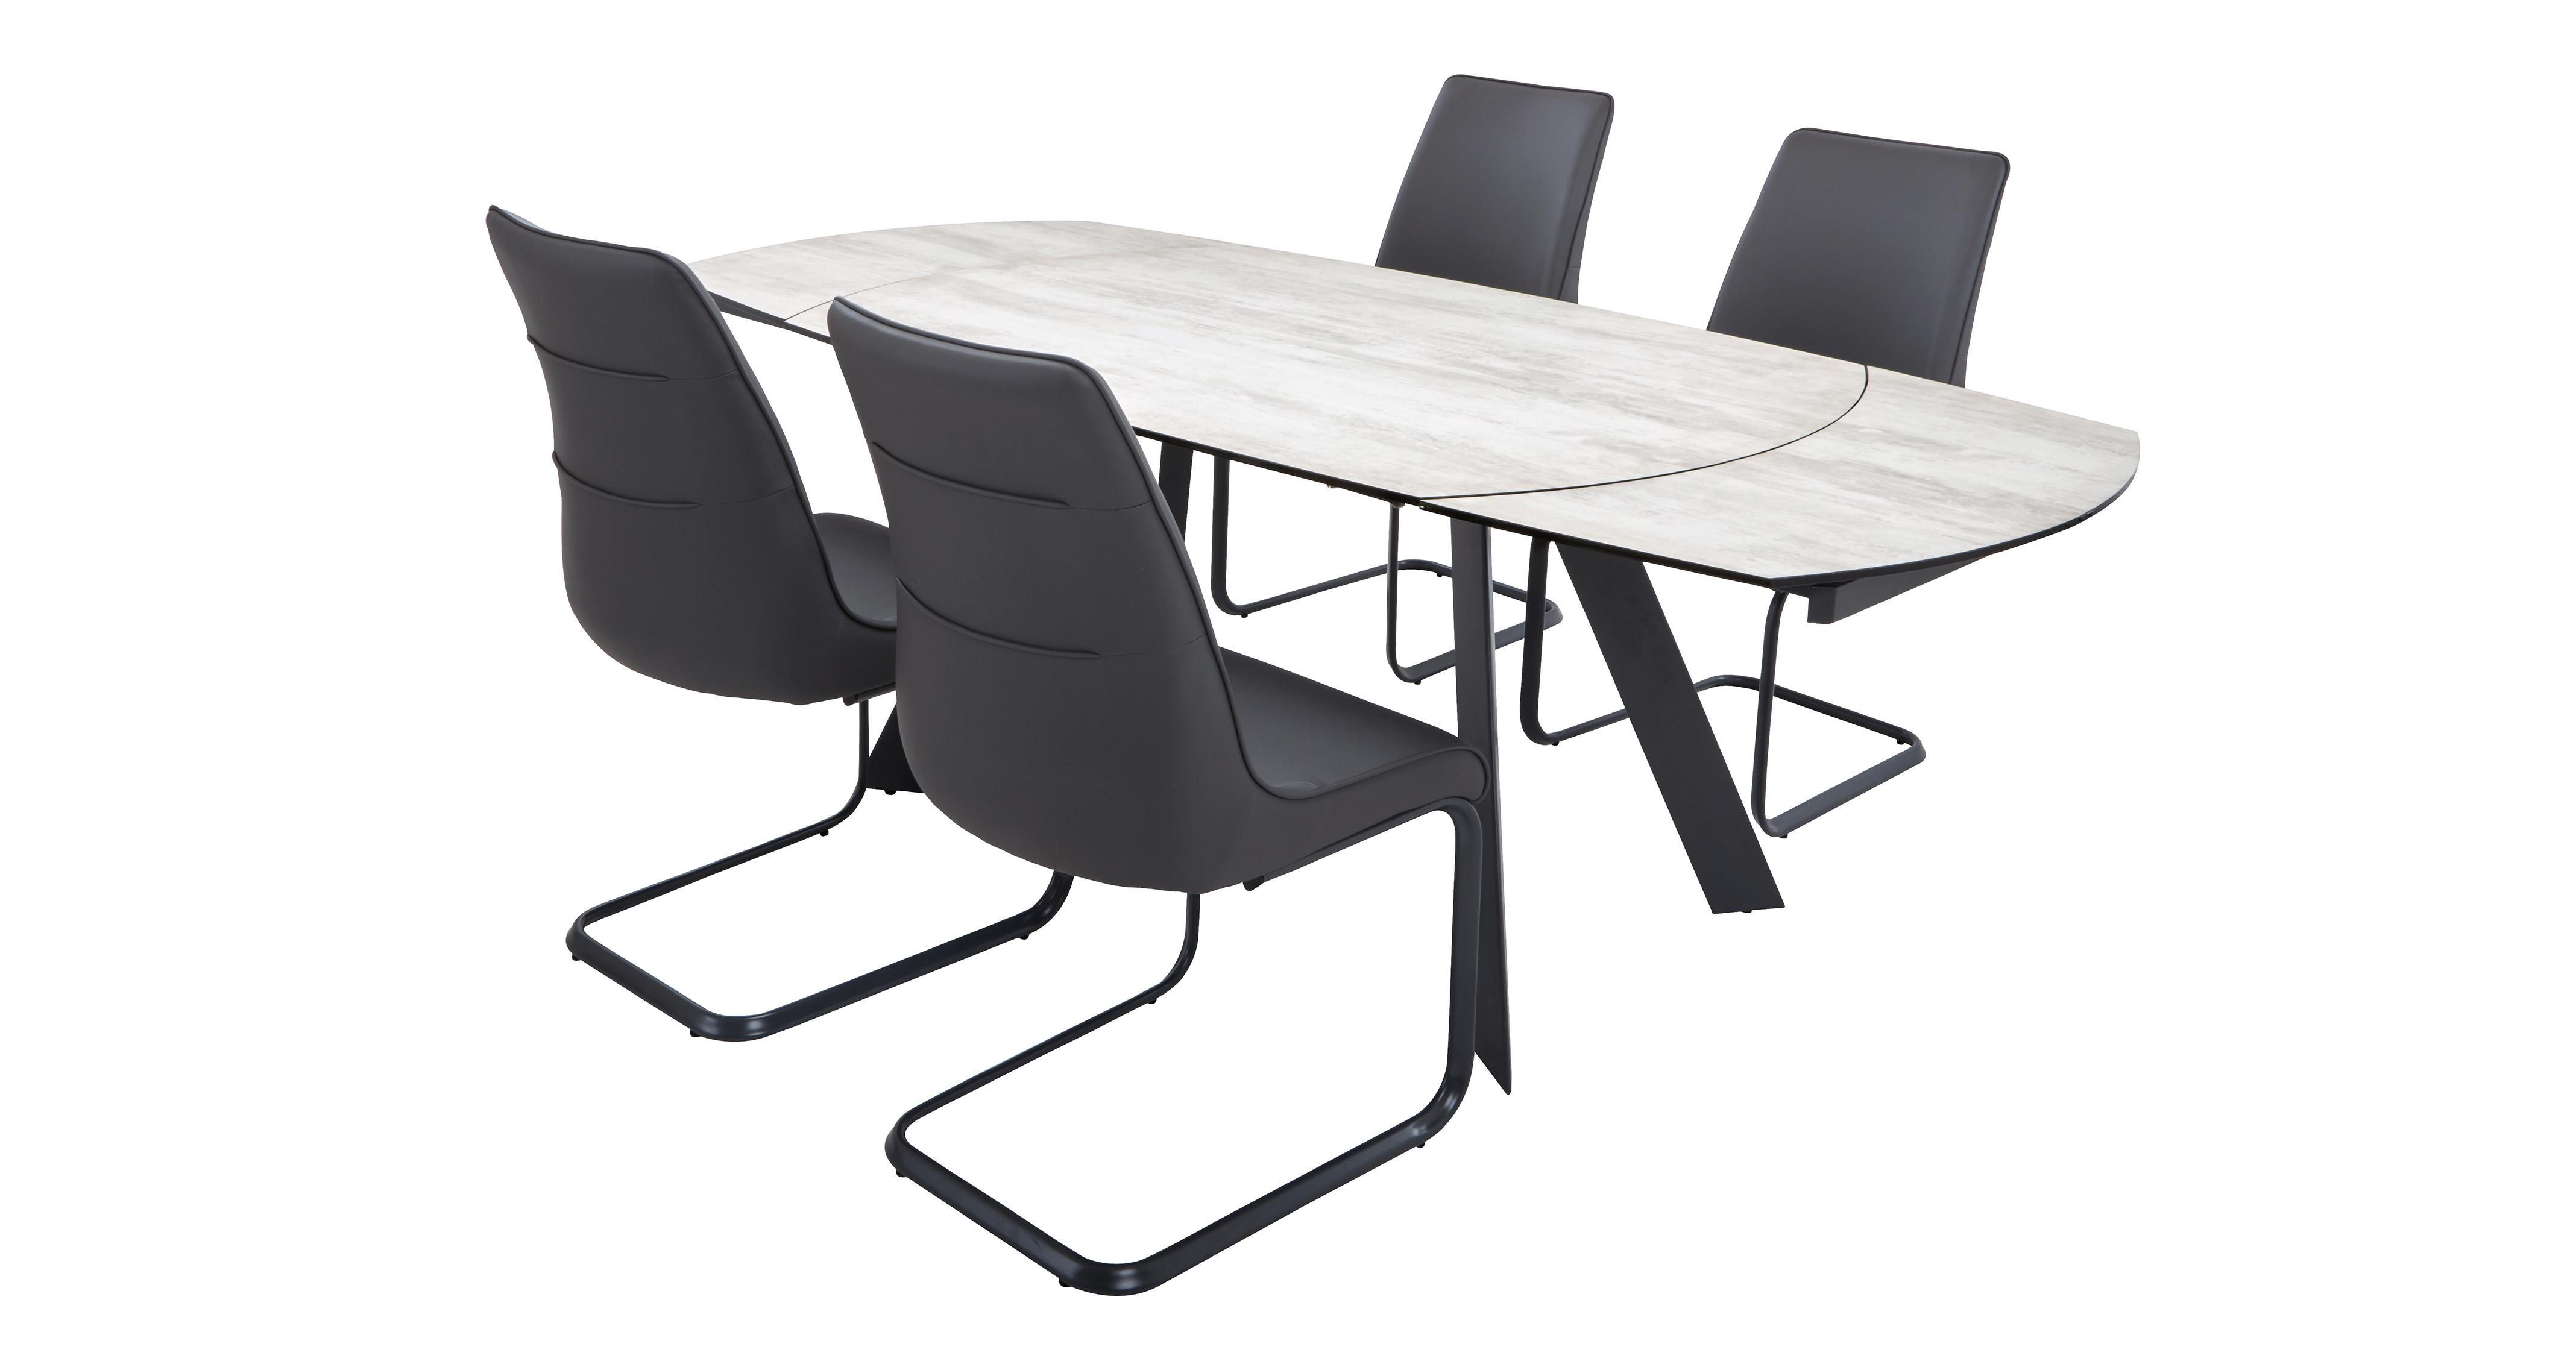 Dorada Extending Dining Table & Set of 4 Chairs | DFS